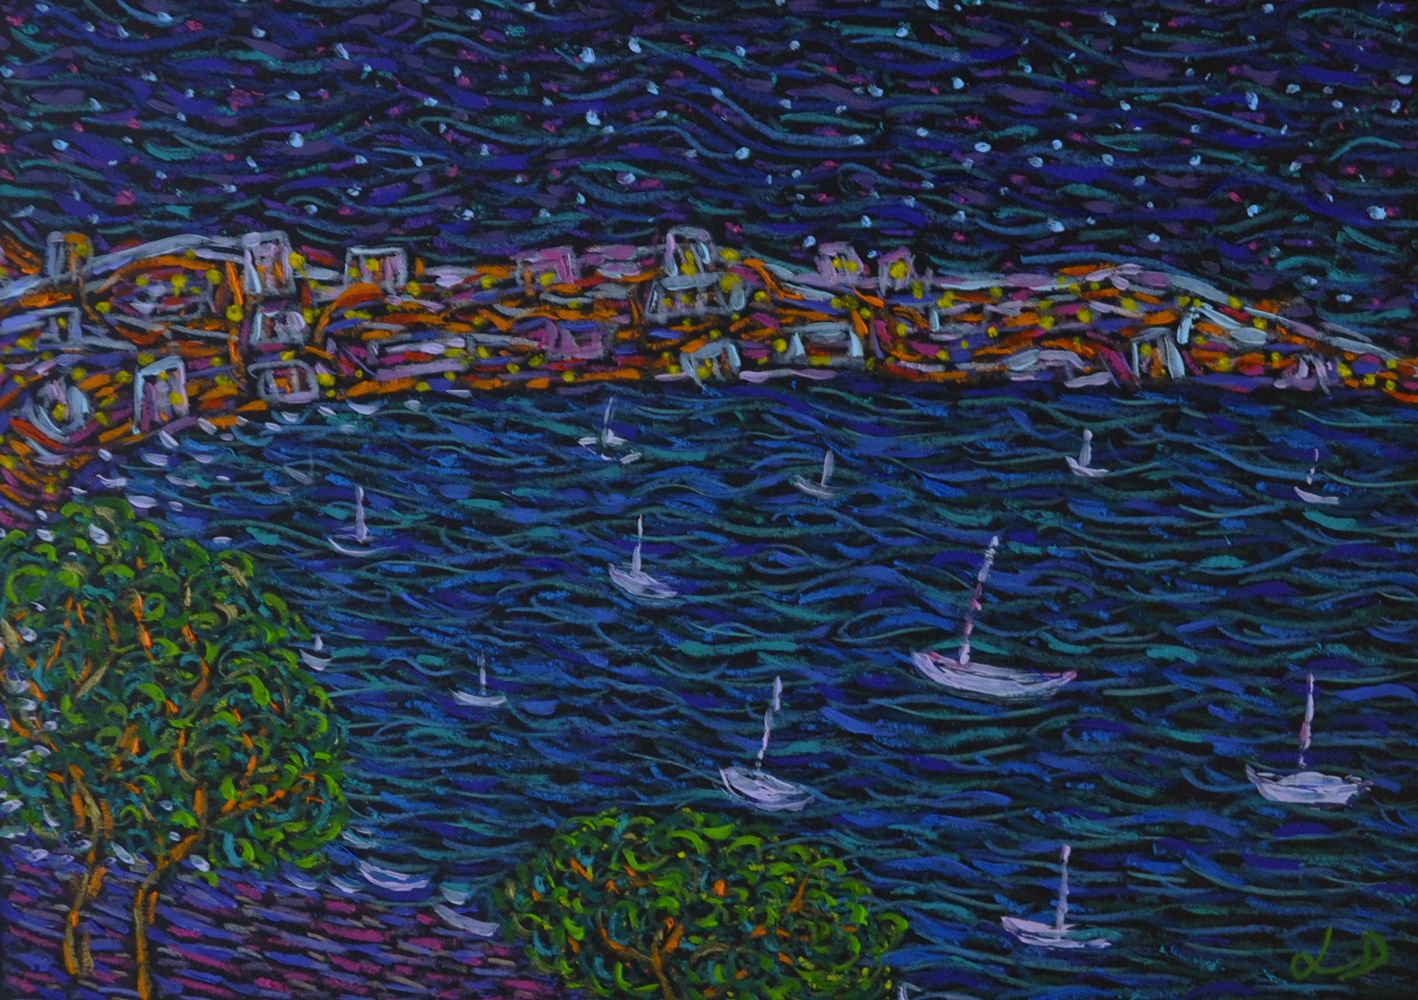 One night in Mallorca. Mixed media sur papier, 21x30, 2018.